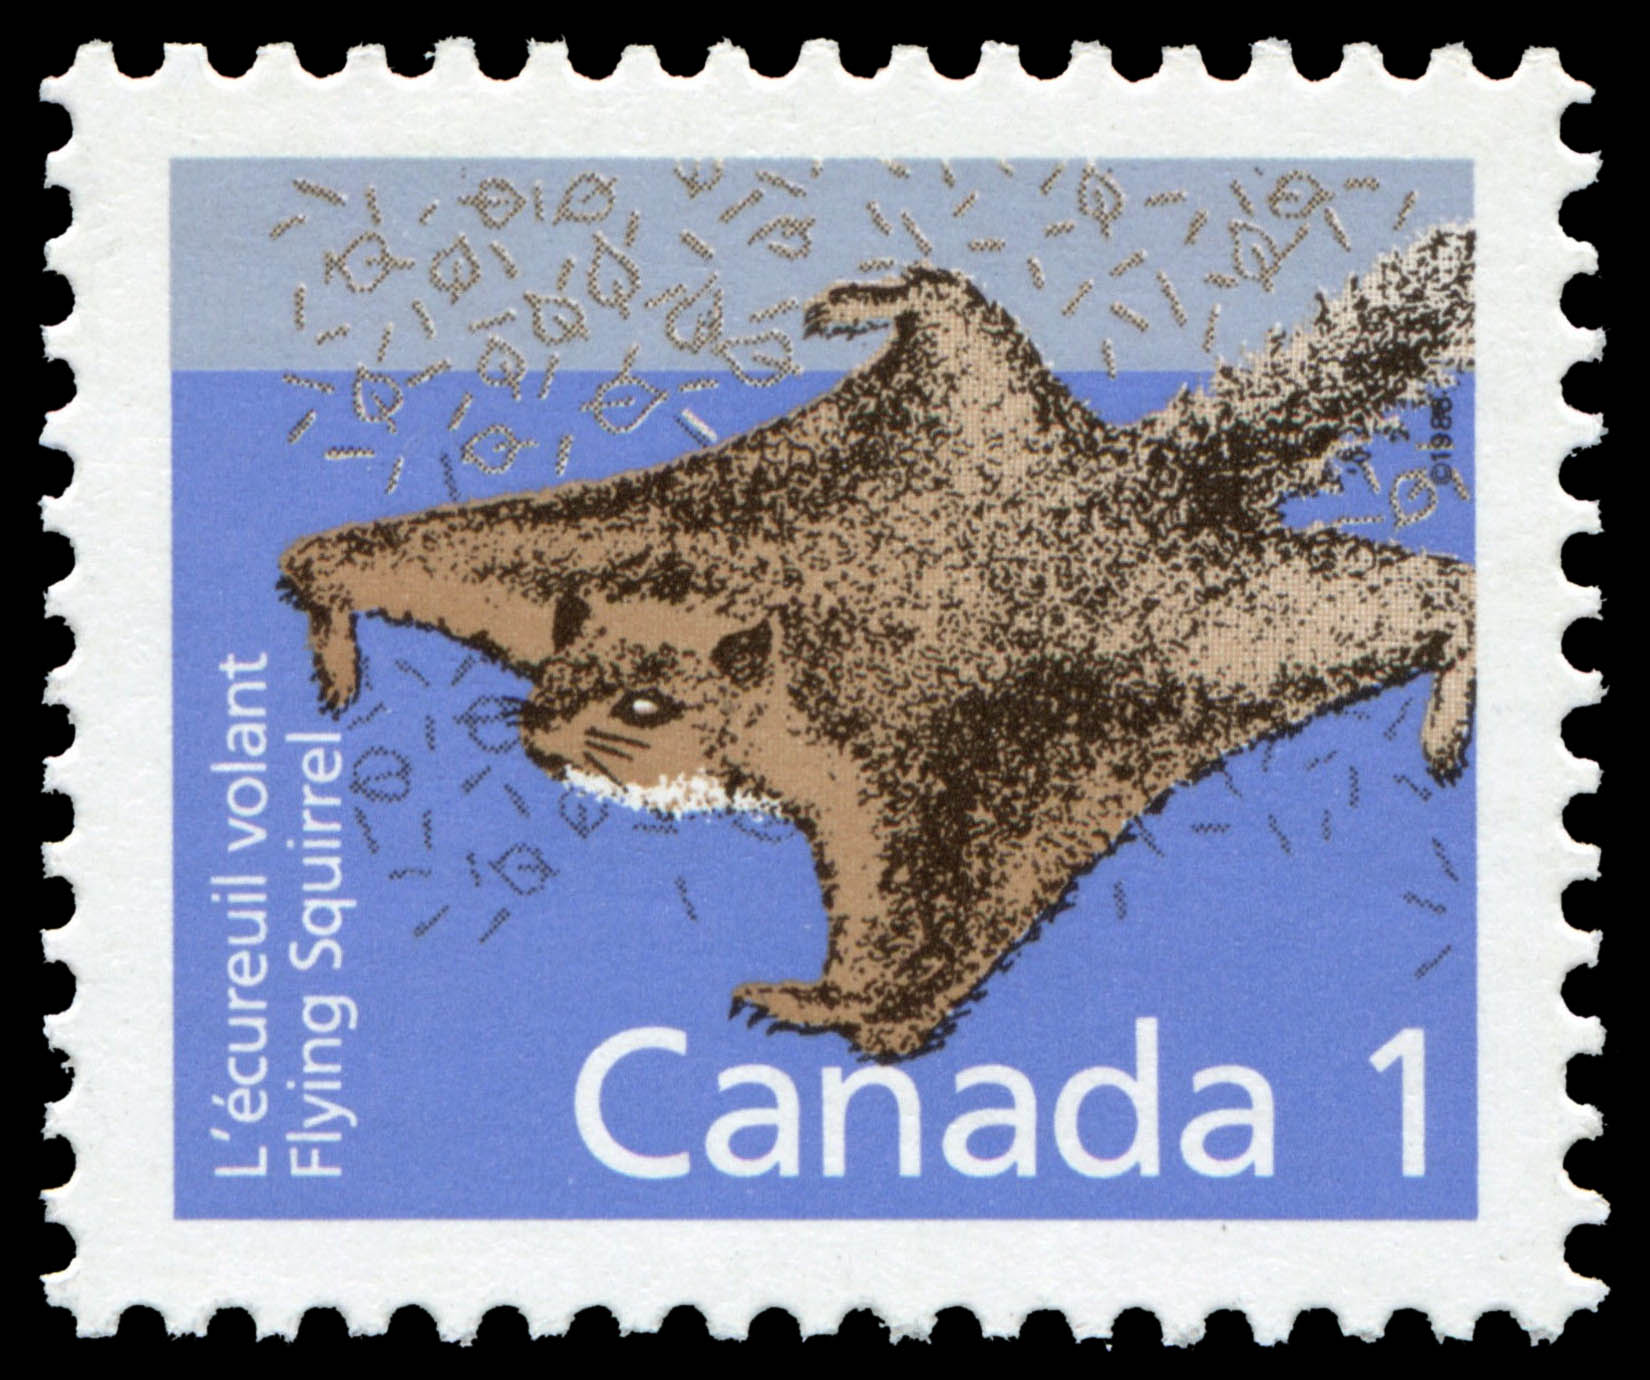 Flying Squirrel Canada Postage Stamp